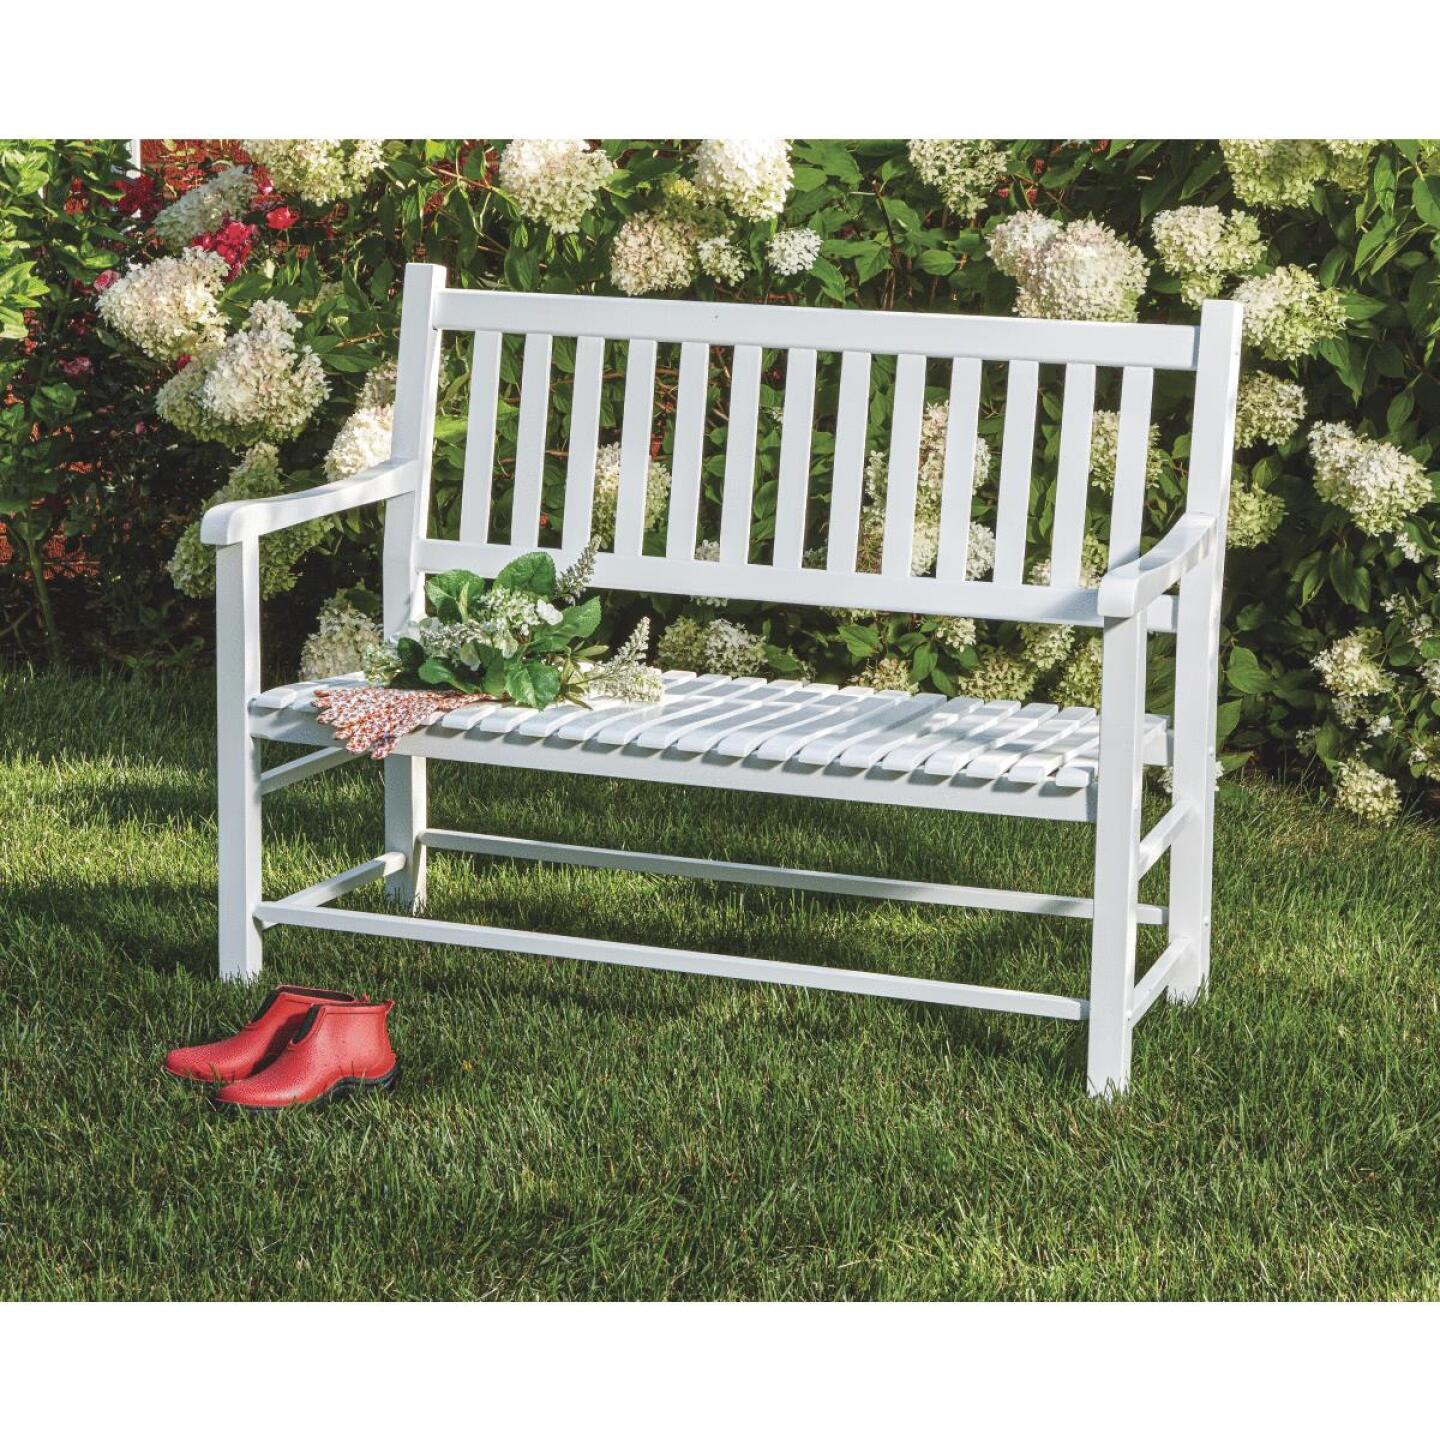 Knollwood Wood Bench Image 3